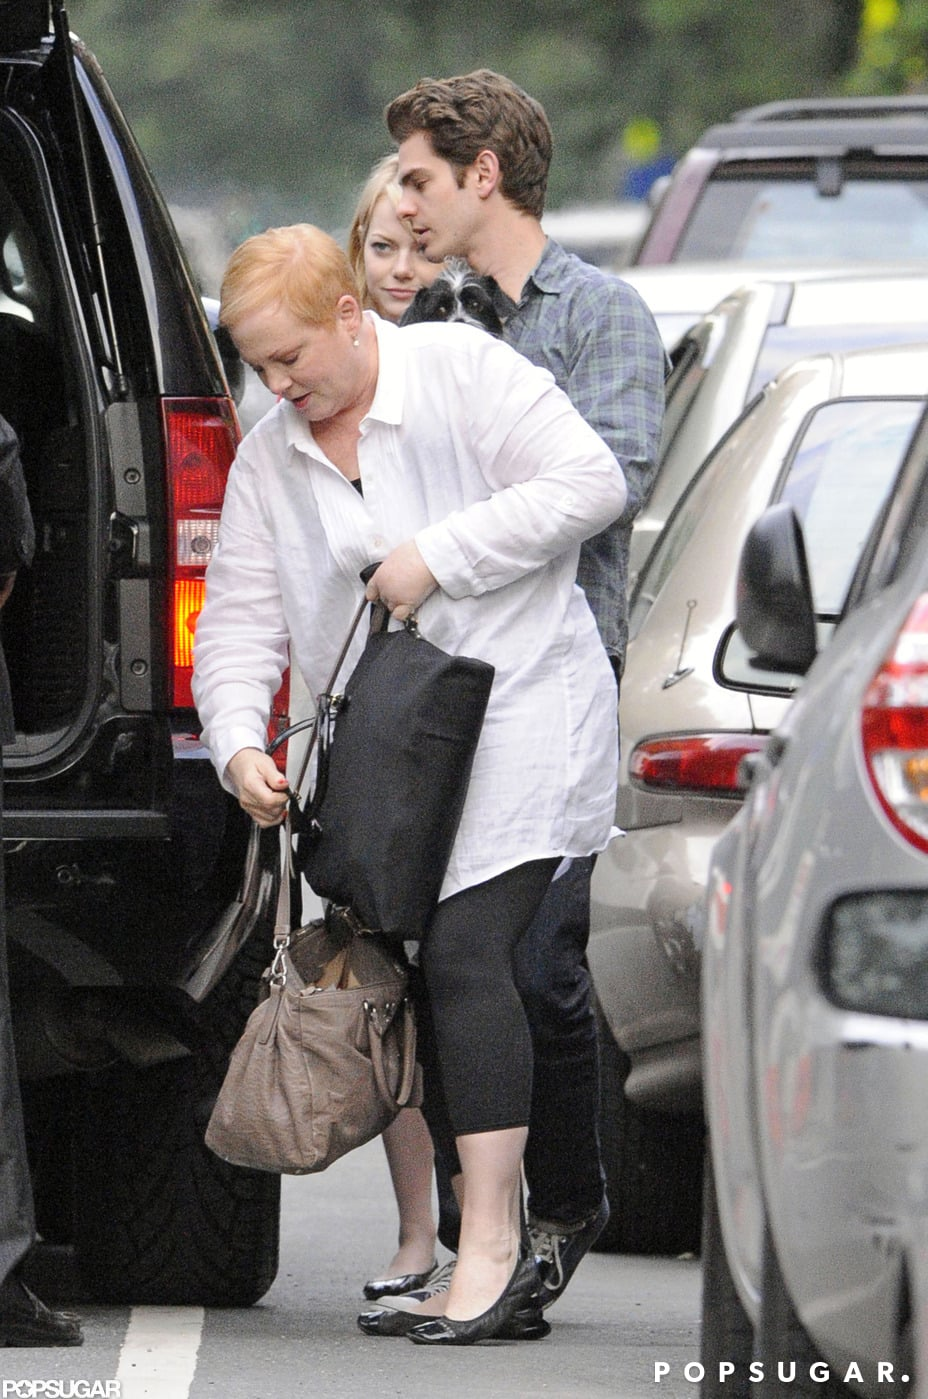 Emma Stone and Andrew Garfield walked her mom to the car after a visit in NYC.